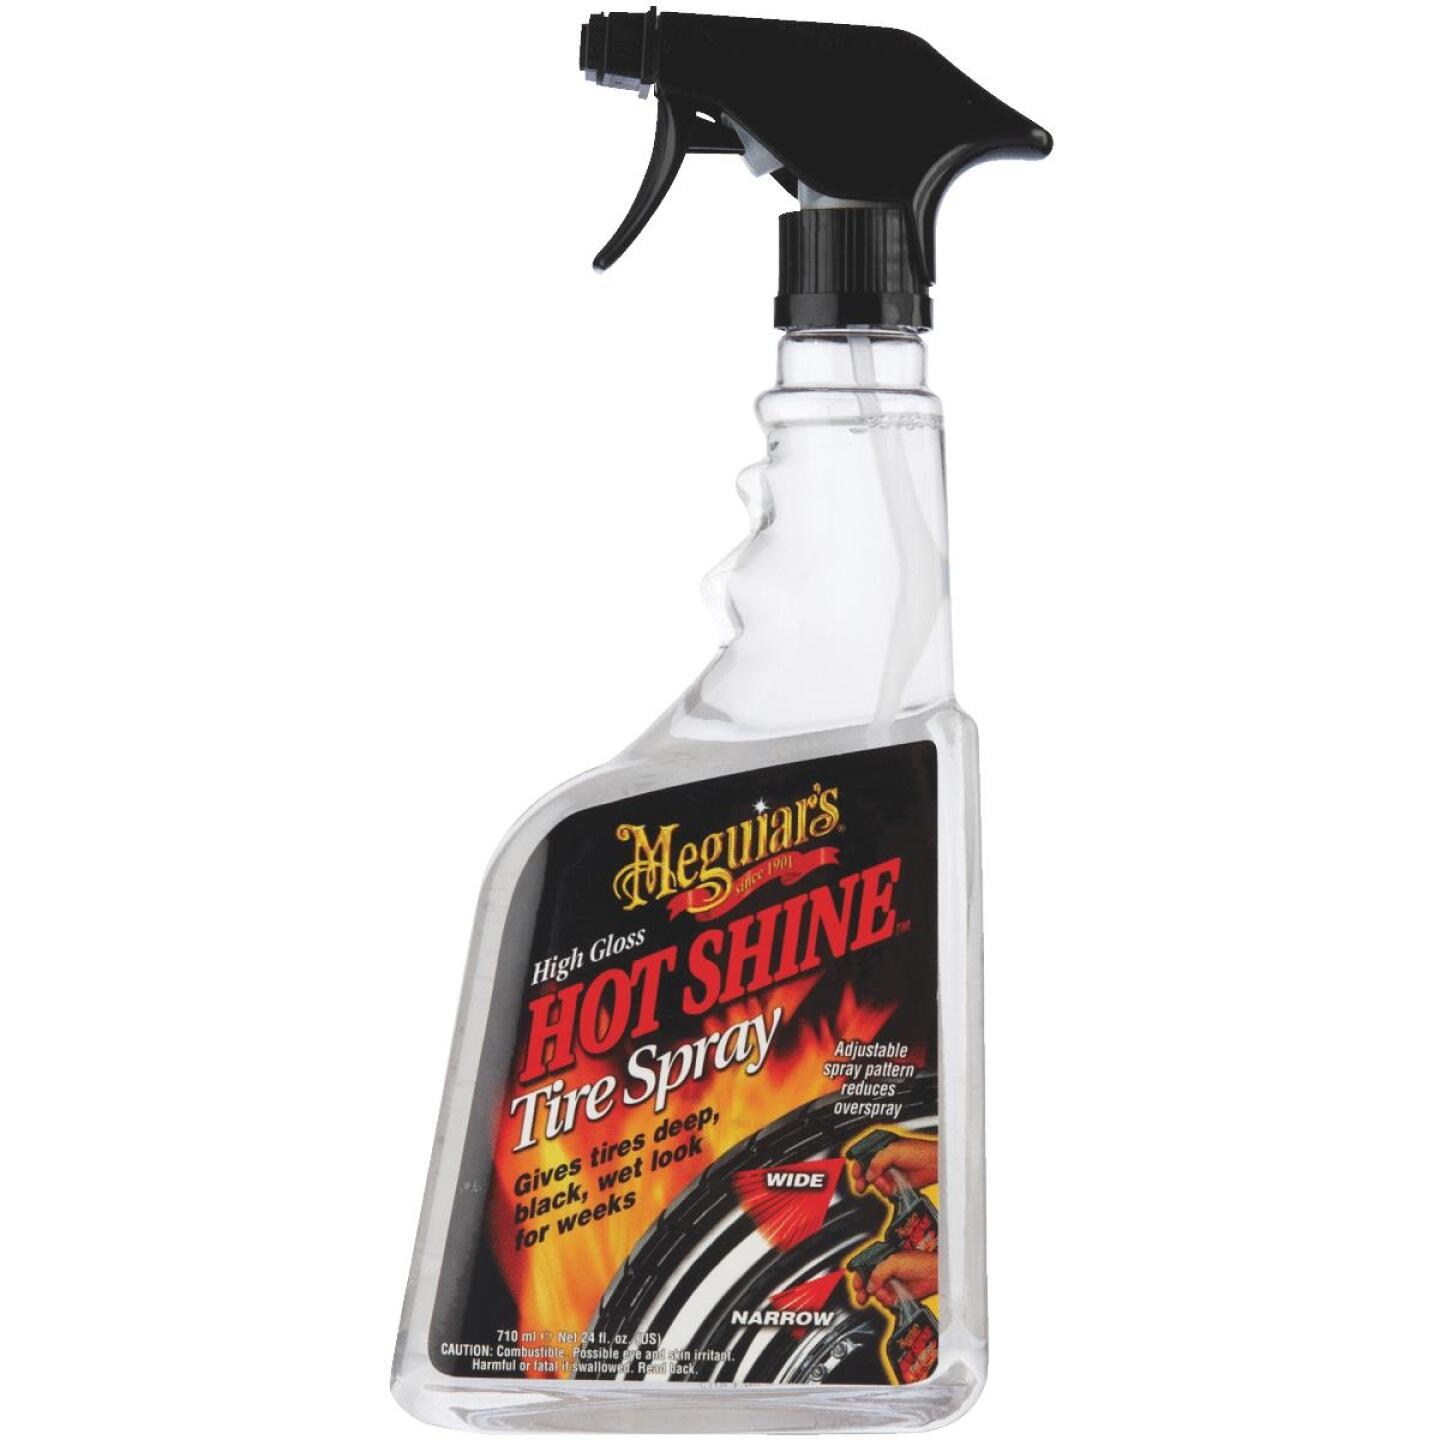 Meguiars Hot Shine High Gloss 24 Oz. Trigger Spray Tire Shine Image 2